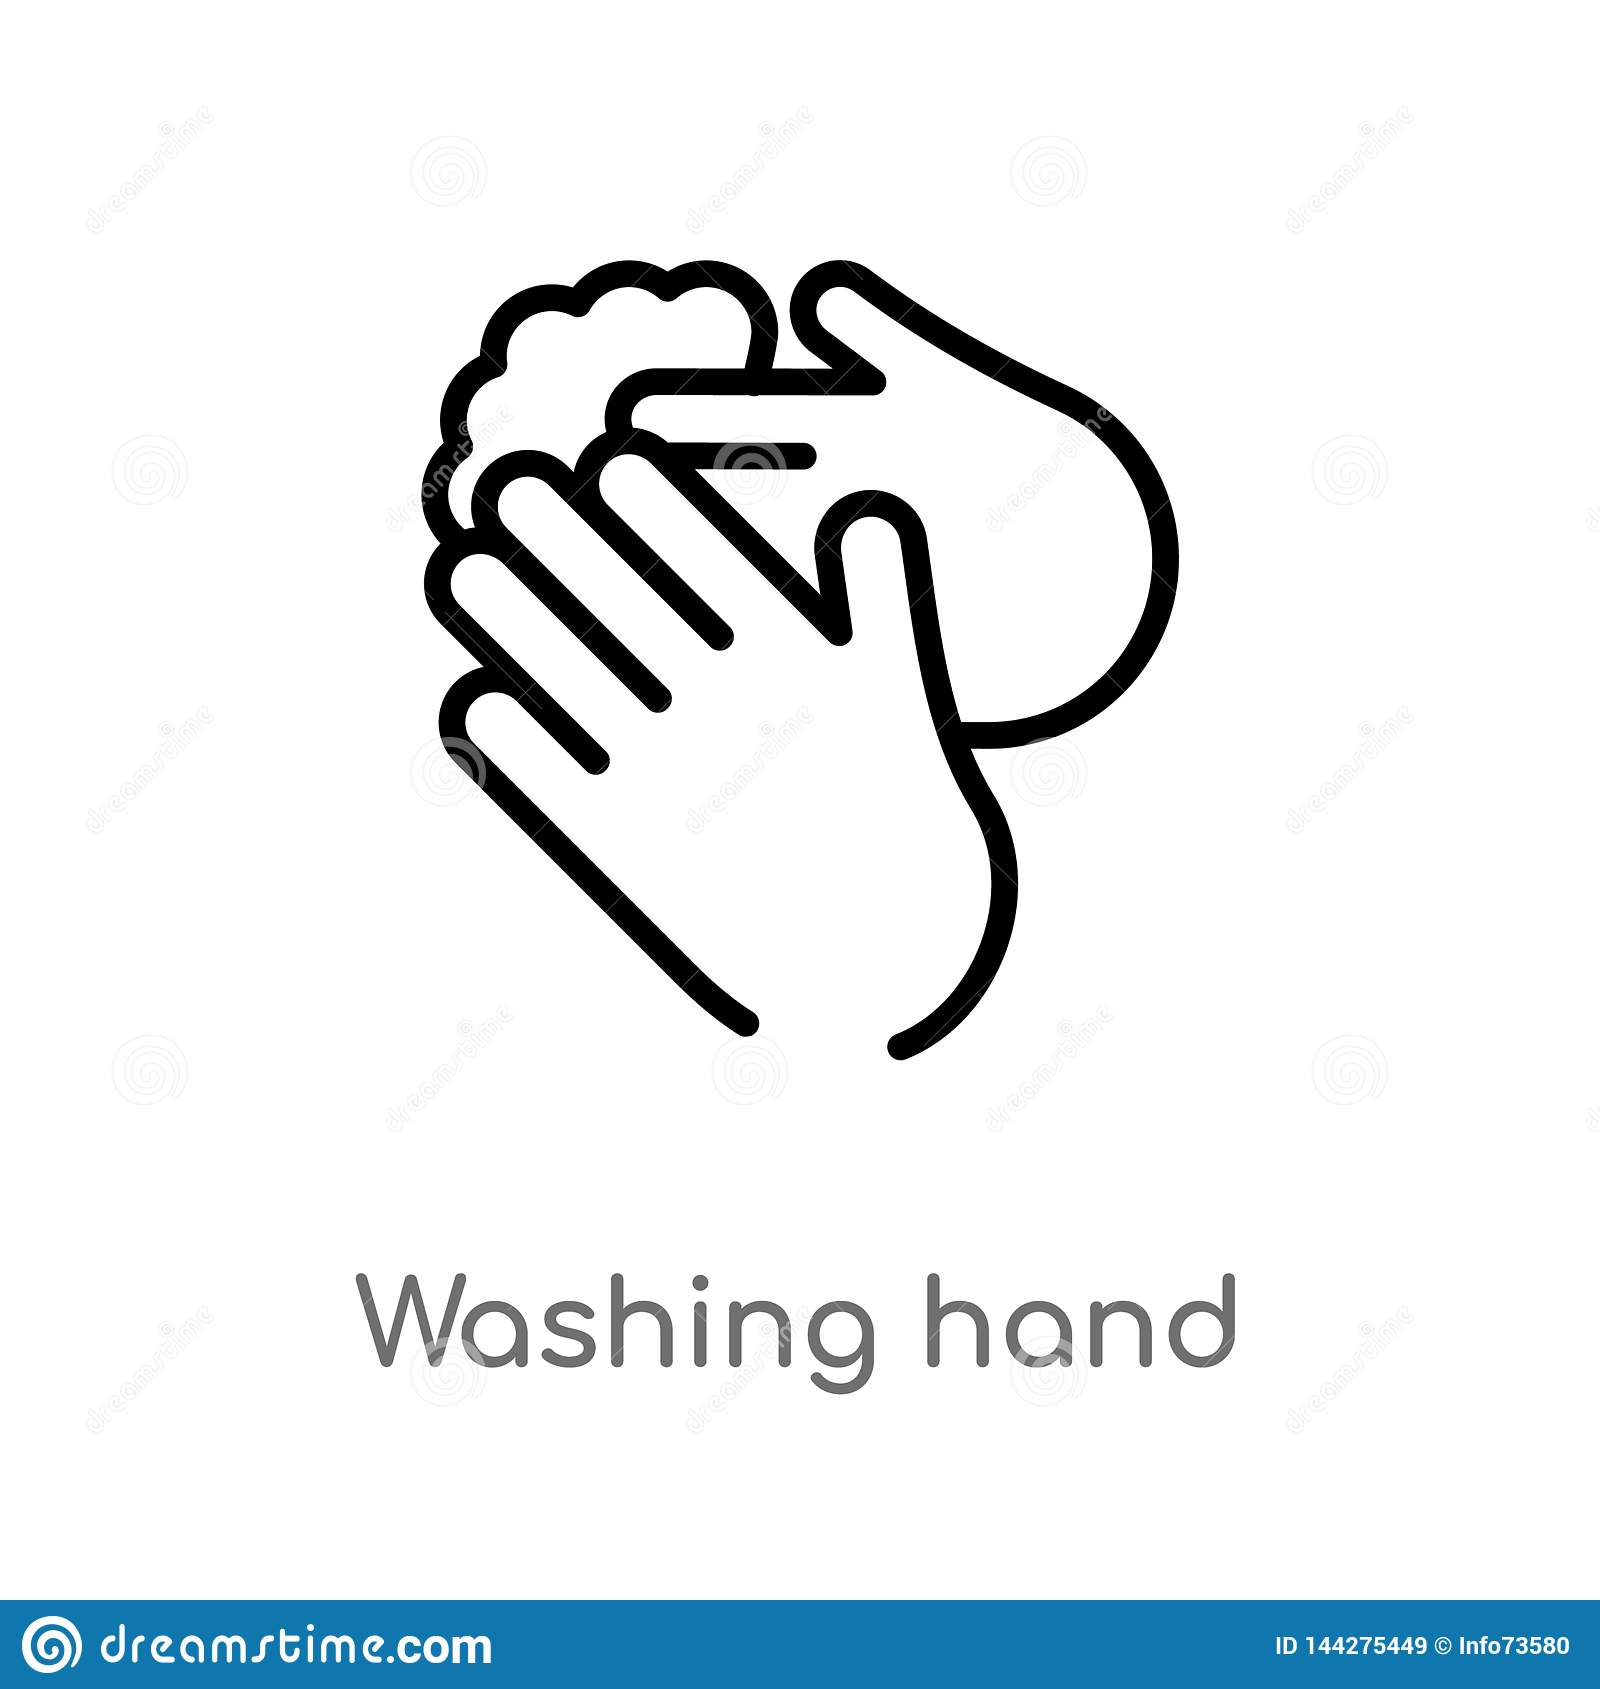 Outline Washing Hand Vector Icon Isolated Black Simple